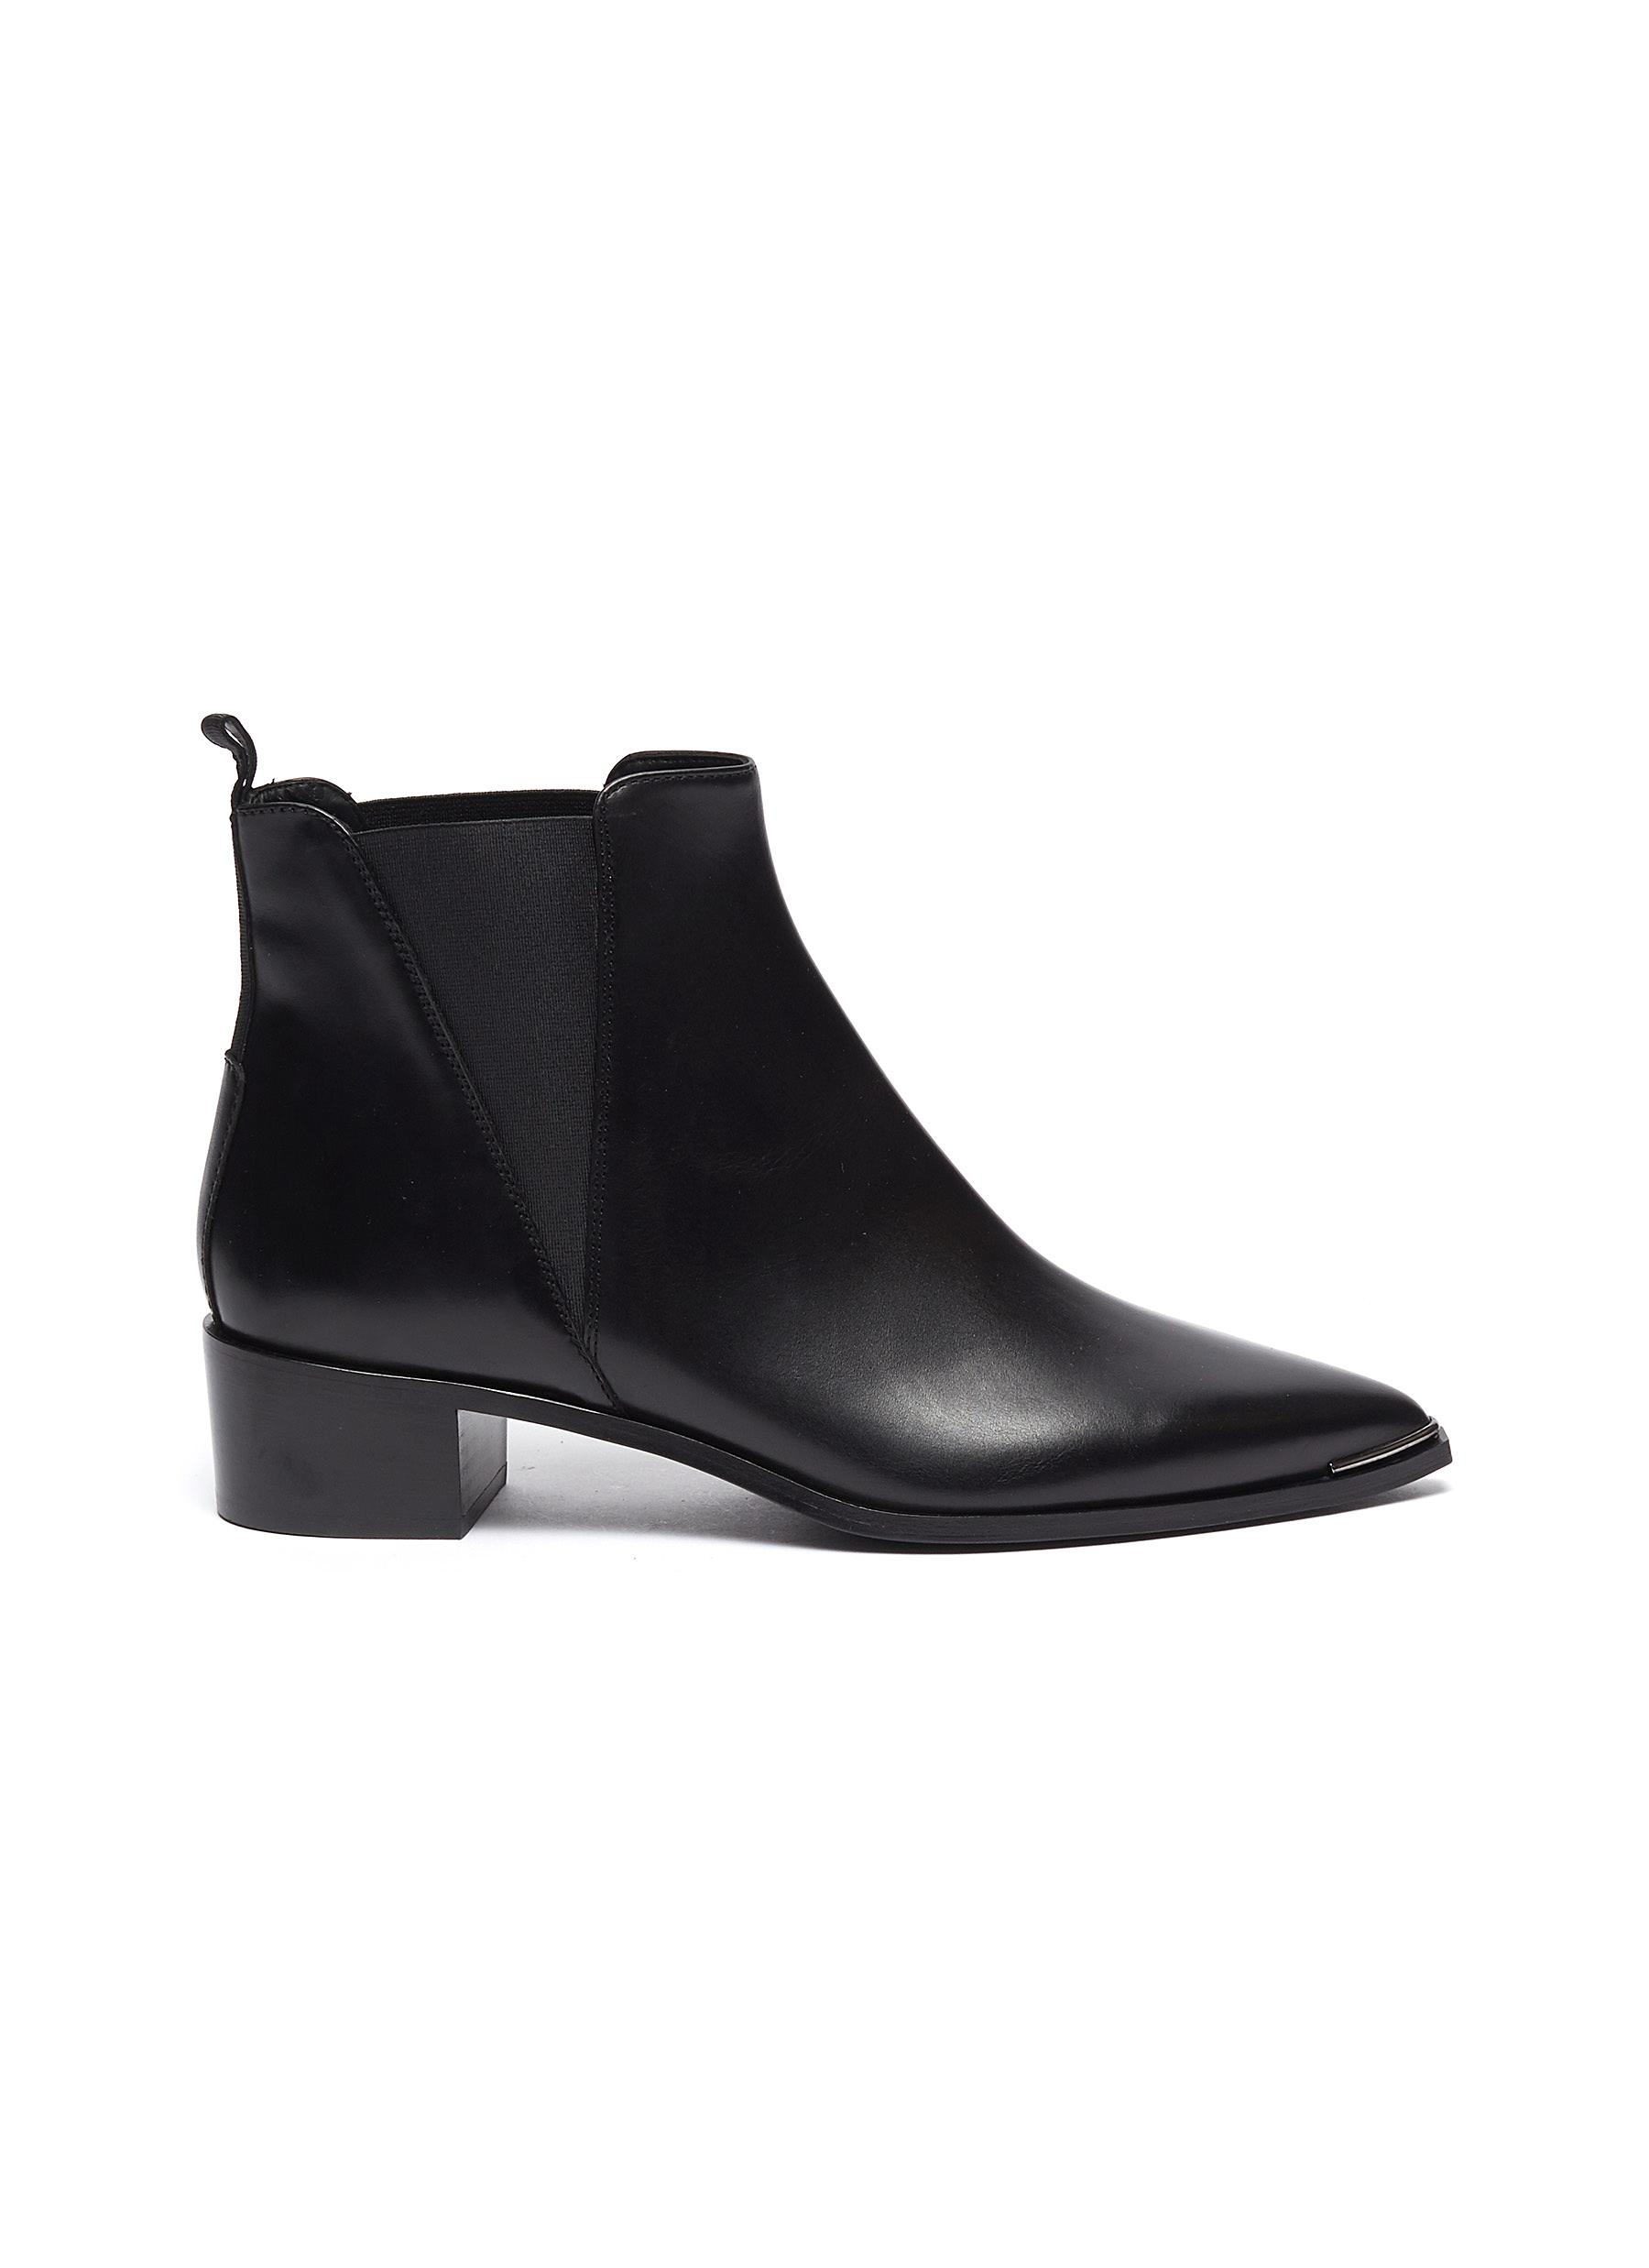 Jensen leather Chelsea boots by Acne Studios